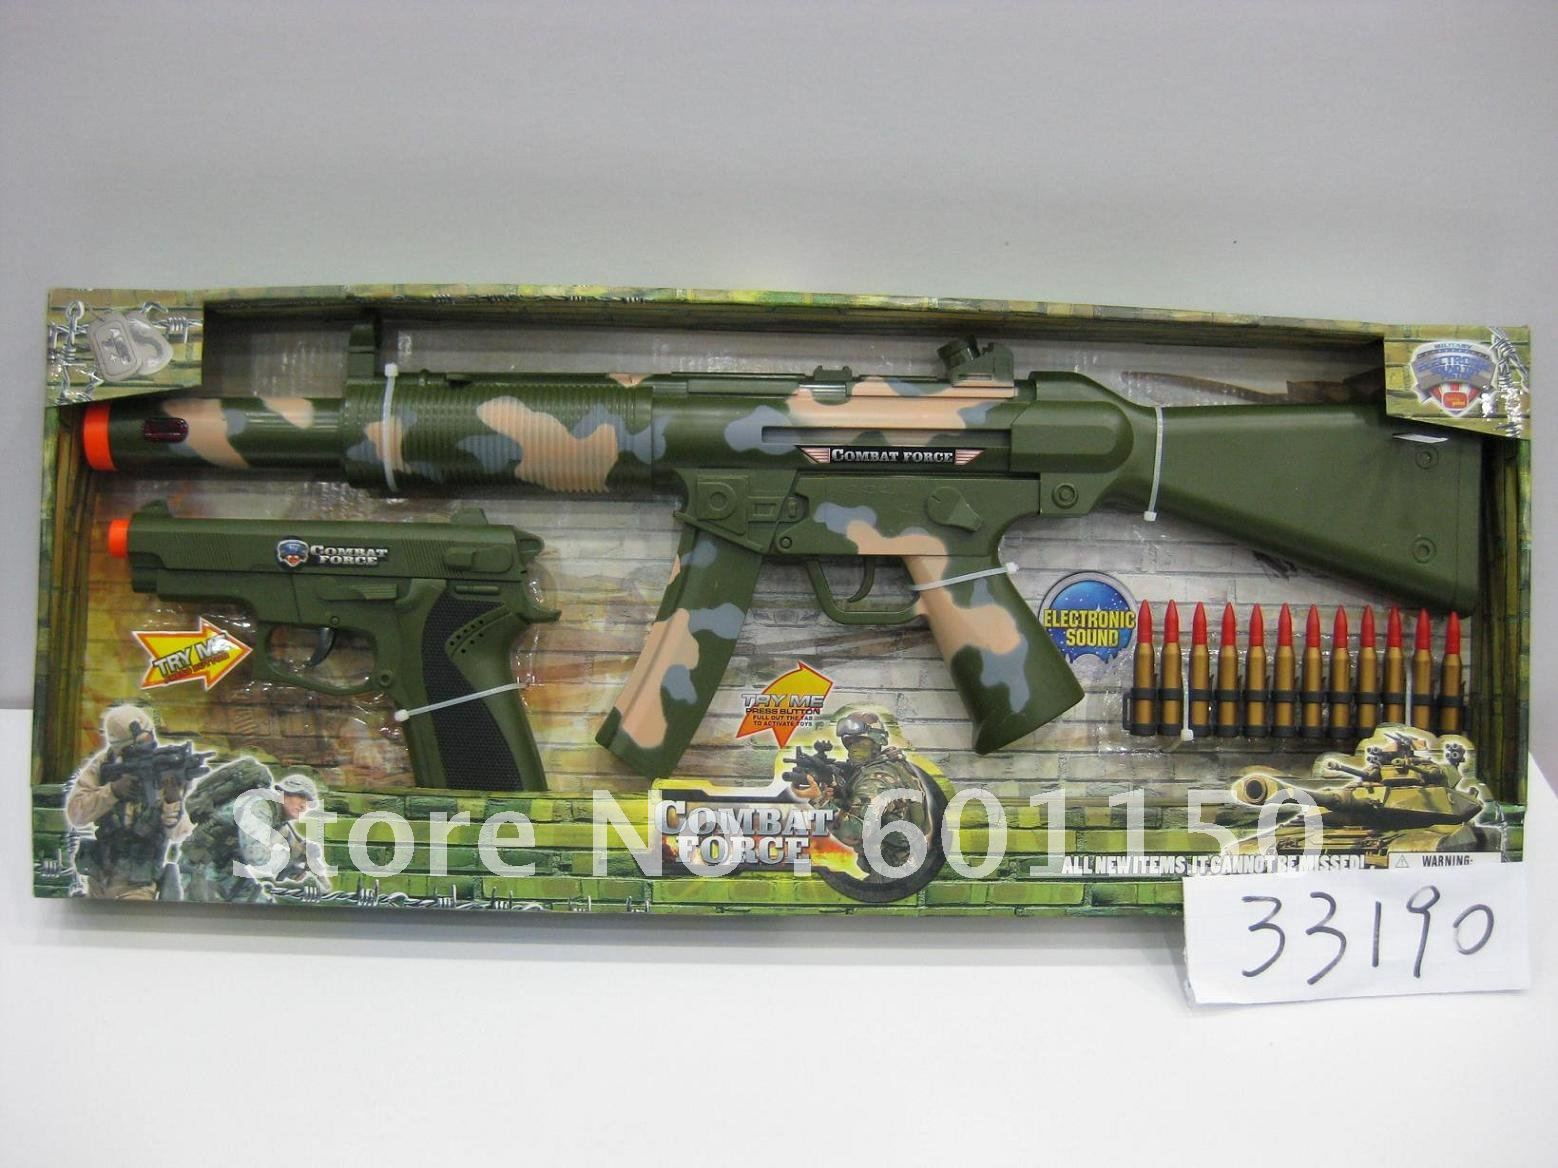 2012 Combat Force Electronic Sound Toy Toy With Small Gun -8899